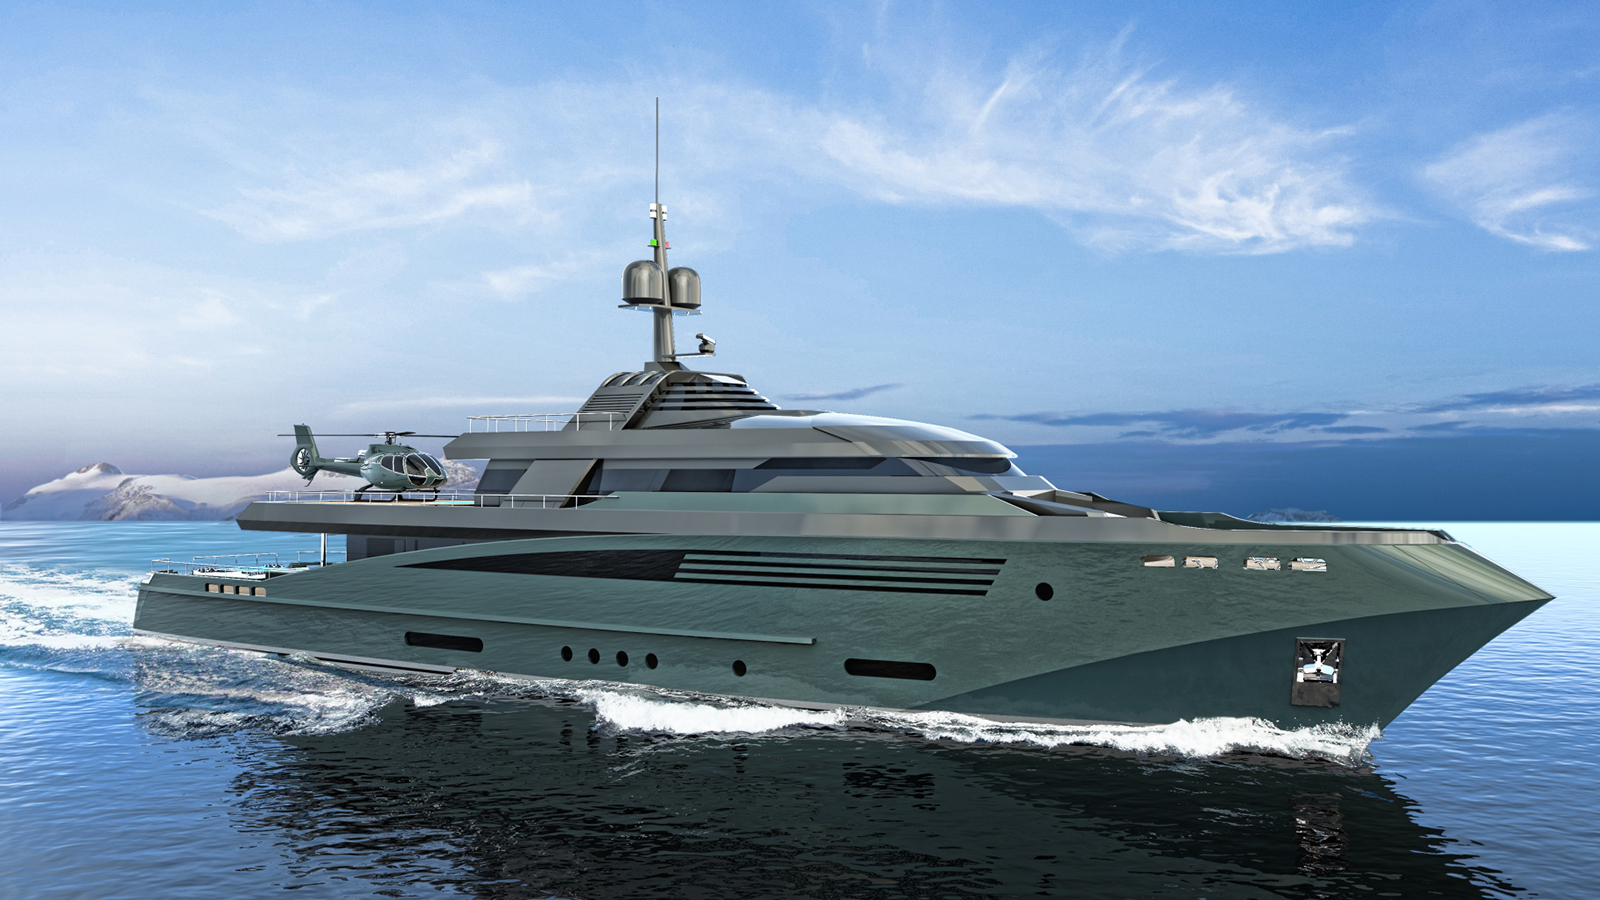 Queequeg Yacht Concept